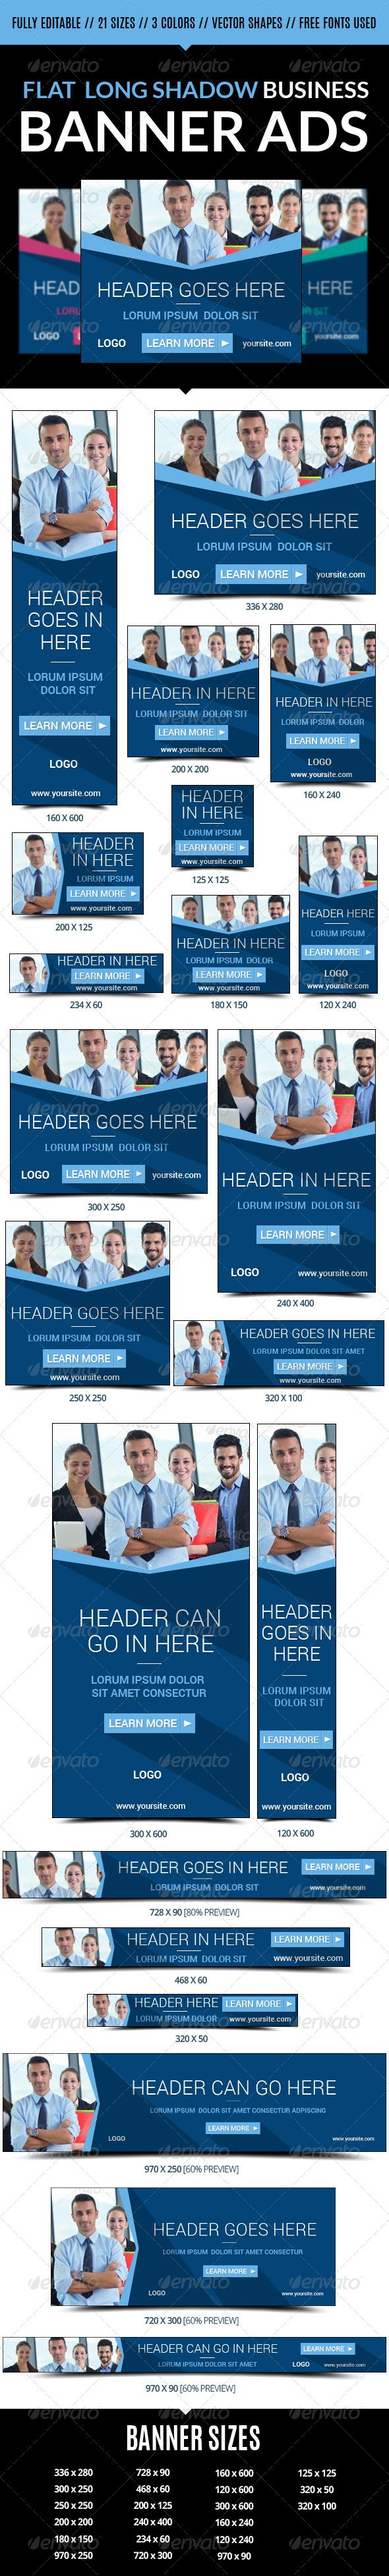 Multipurpose Flat Business Banner Ads Template PSD | Buy and Download: http://graphicriver.net/item/multipurpose-flat-business-banner-ads/8411829?WT.ac=category_thumb&WT.z_author=red_zebra&ref=ksioks